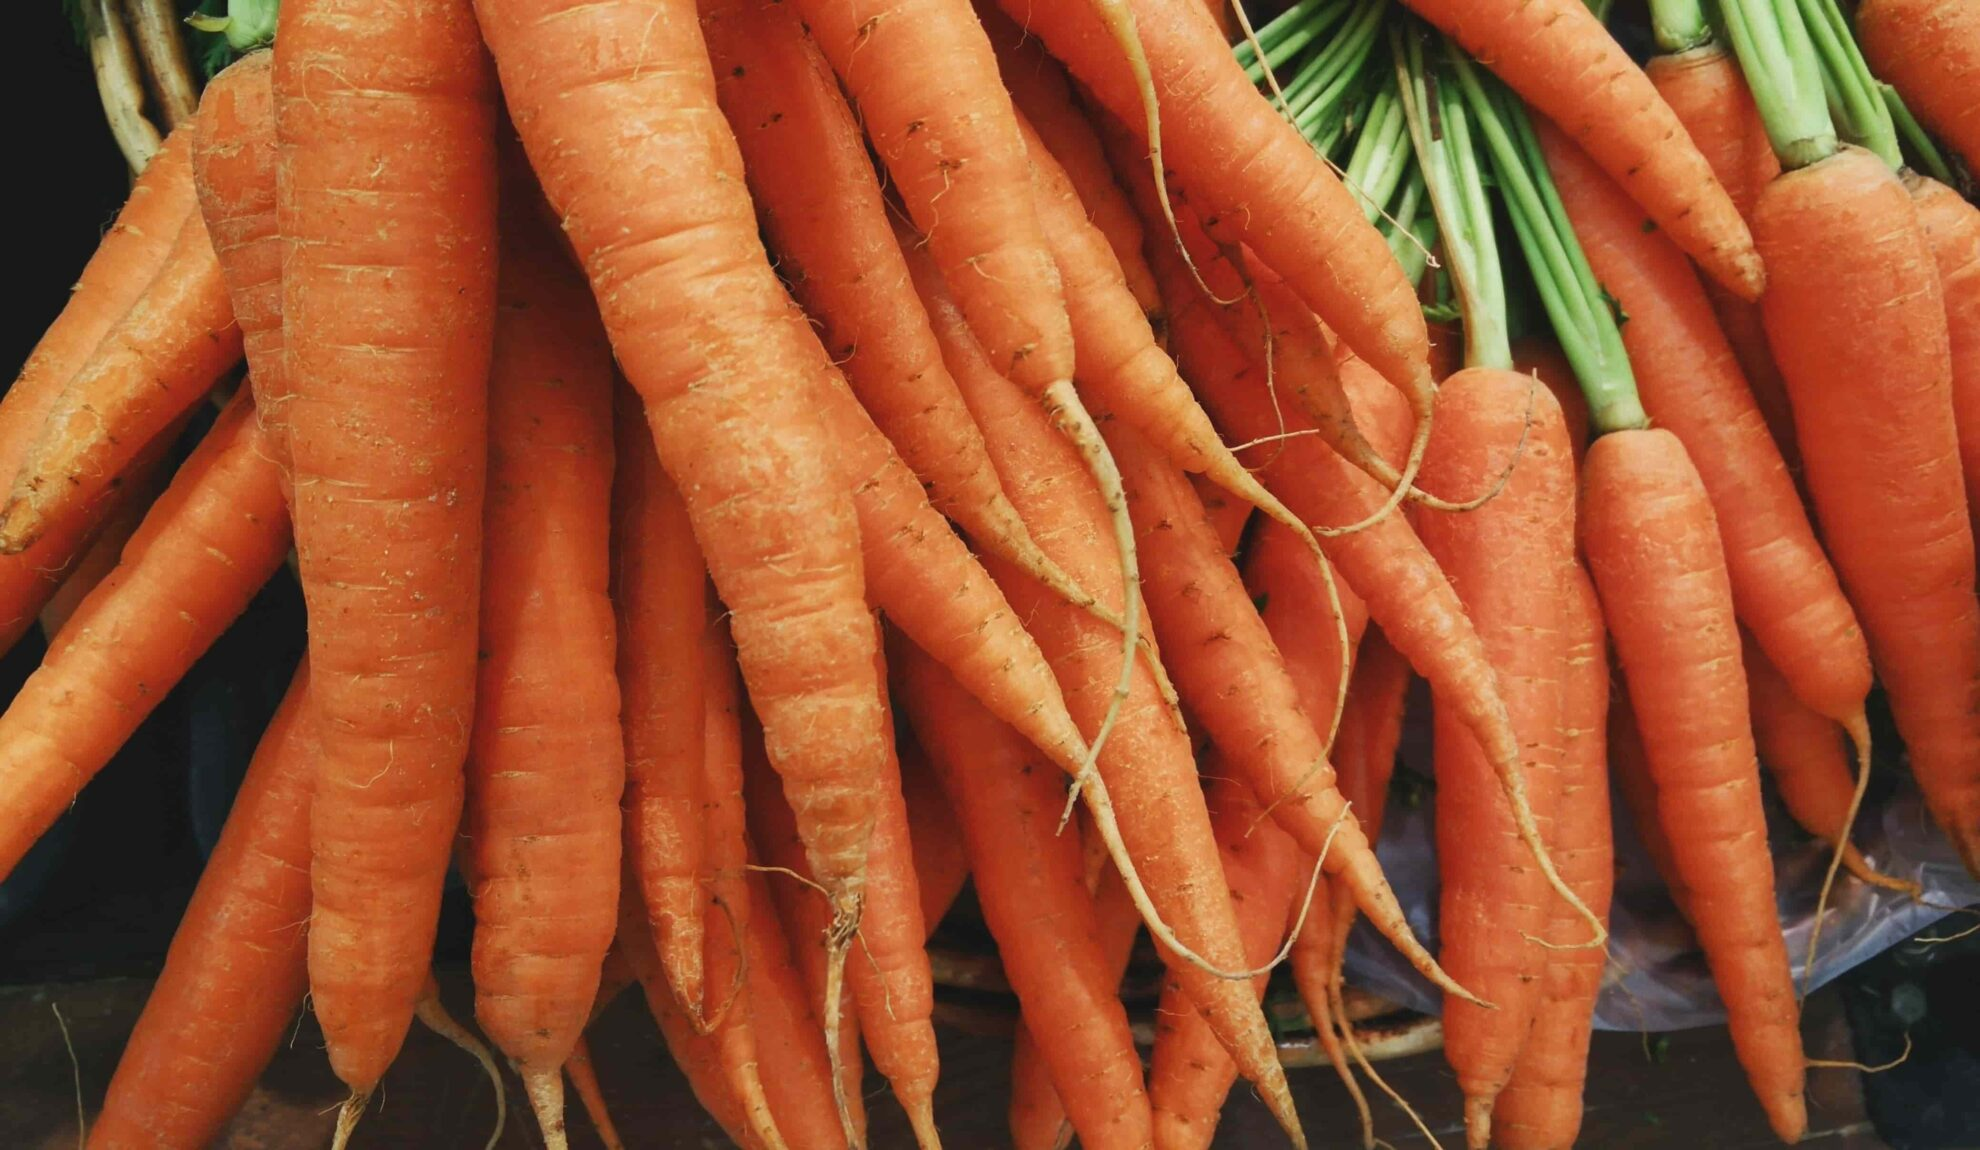 Carrots_Veggies